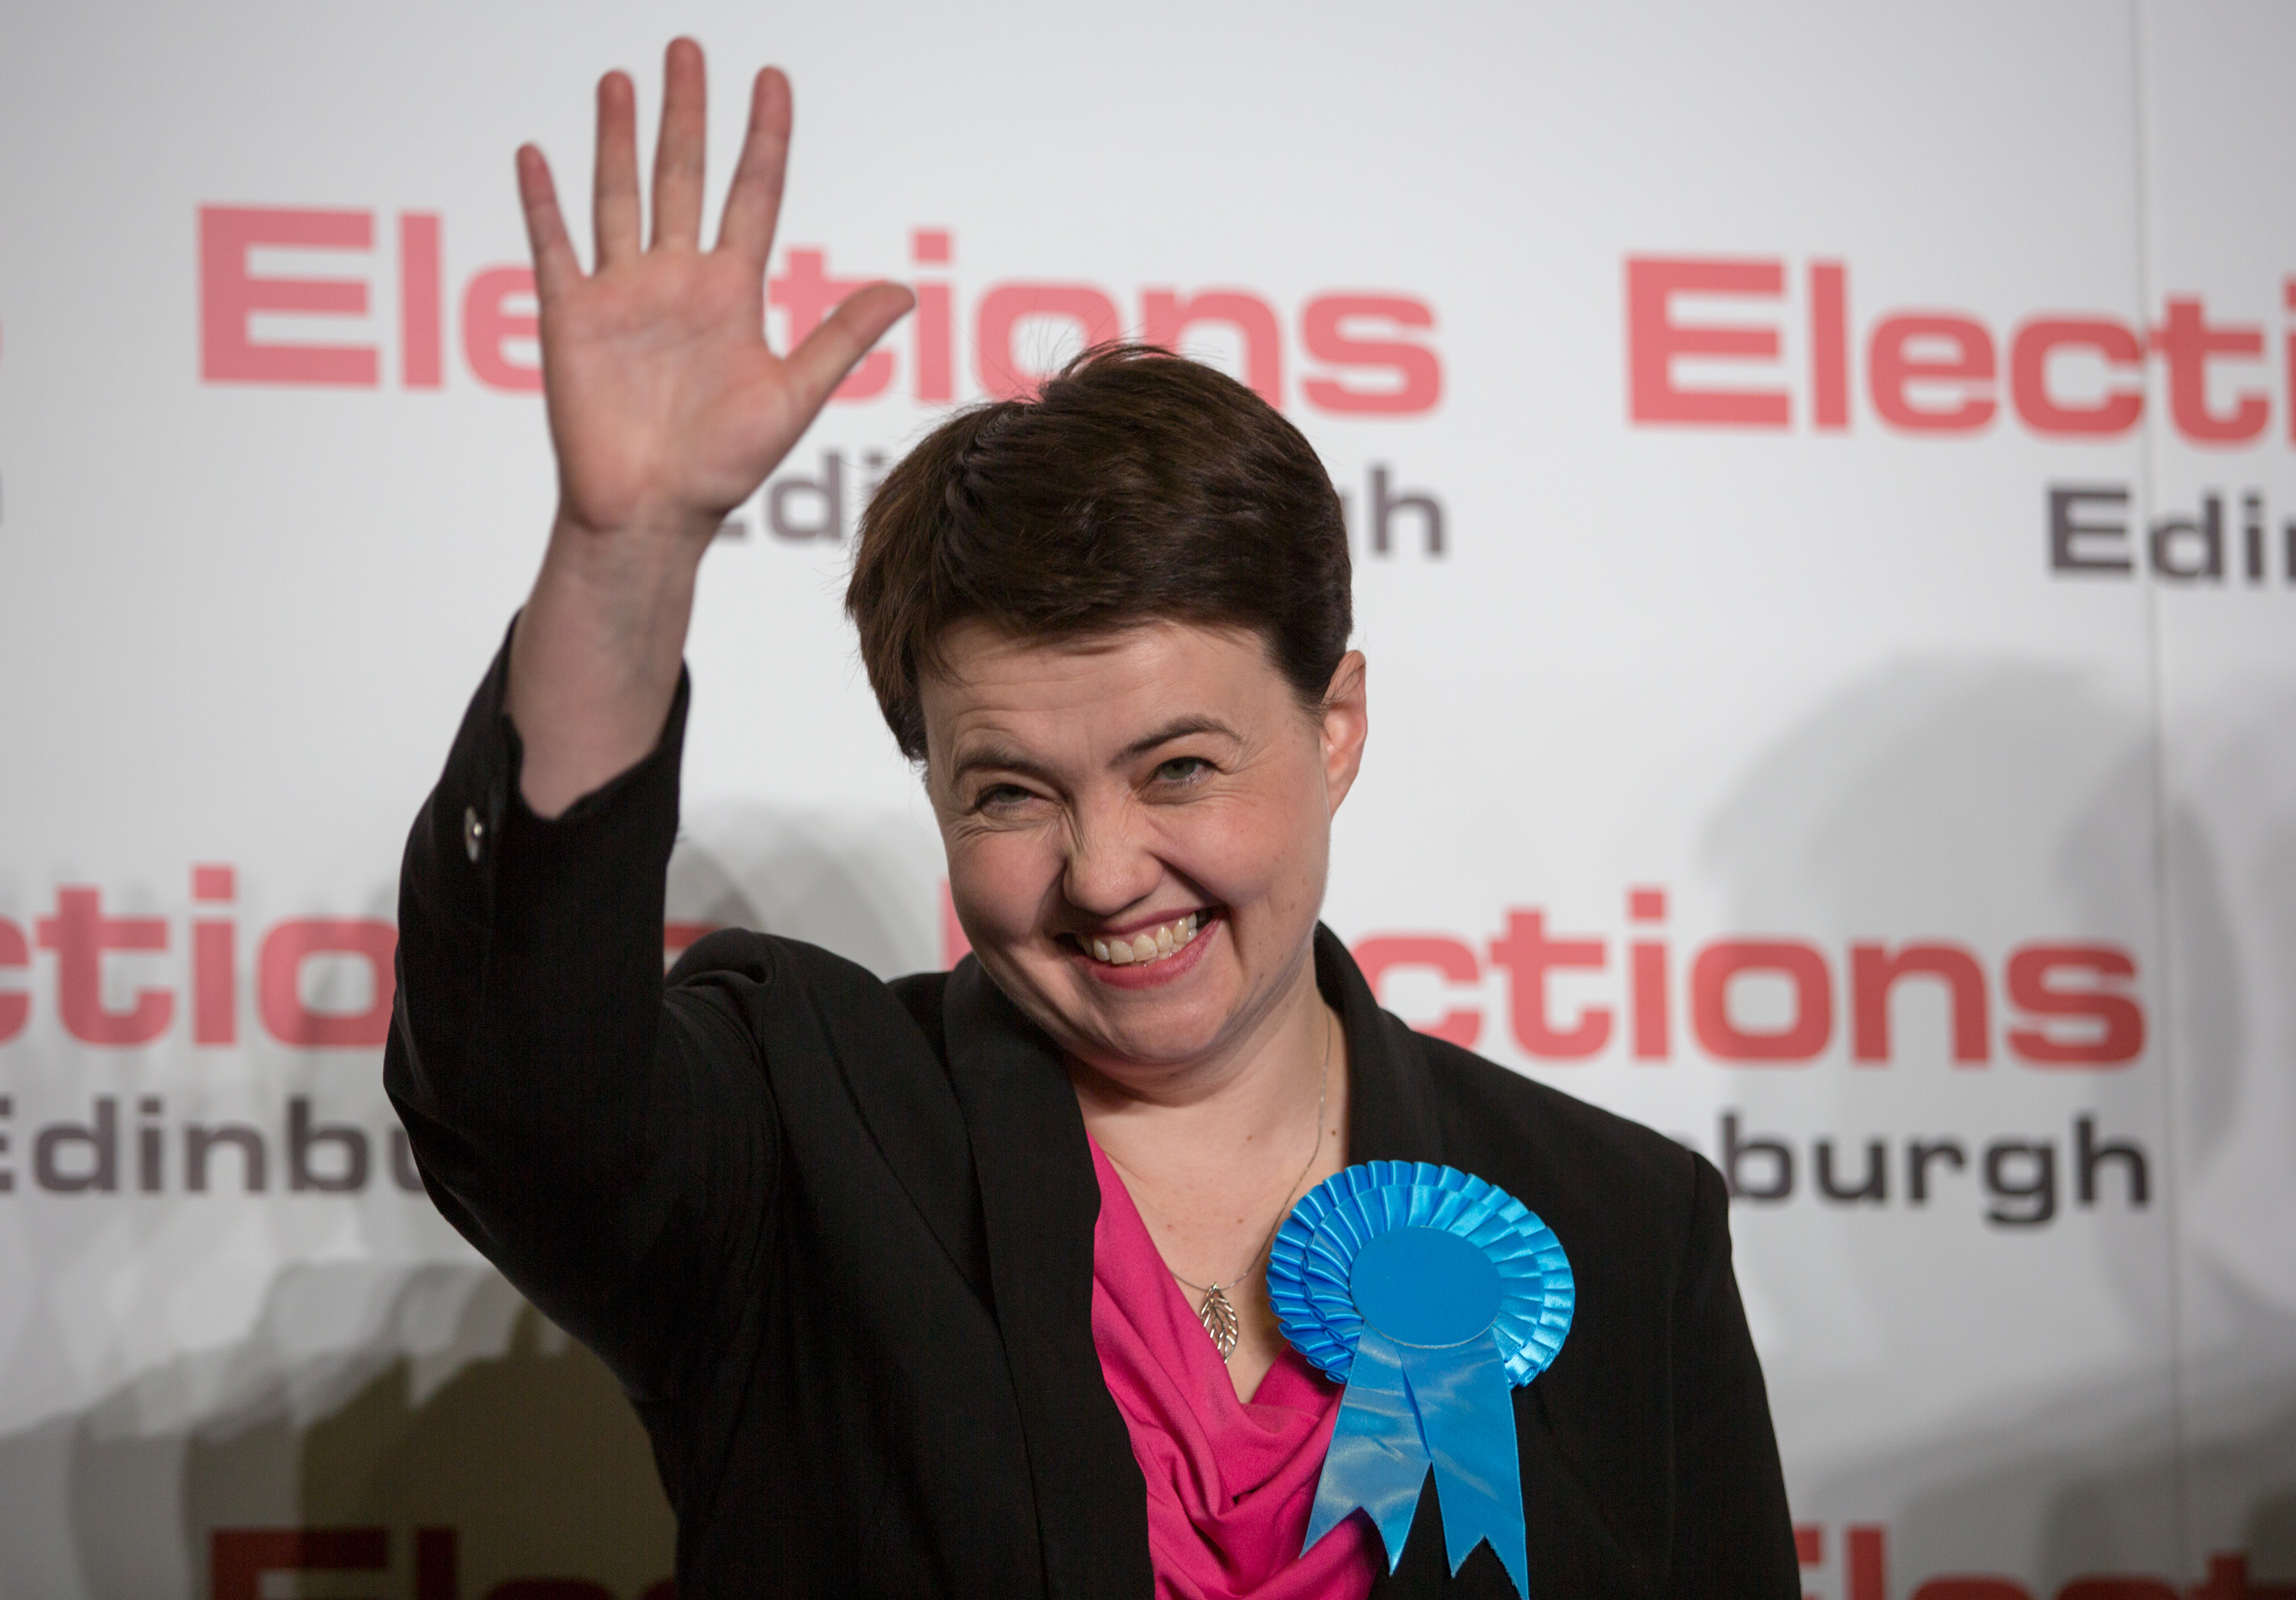 Scottish Conservative Leader Ruth Davidson (Matt Cardy/Getty Images)